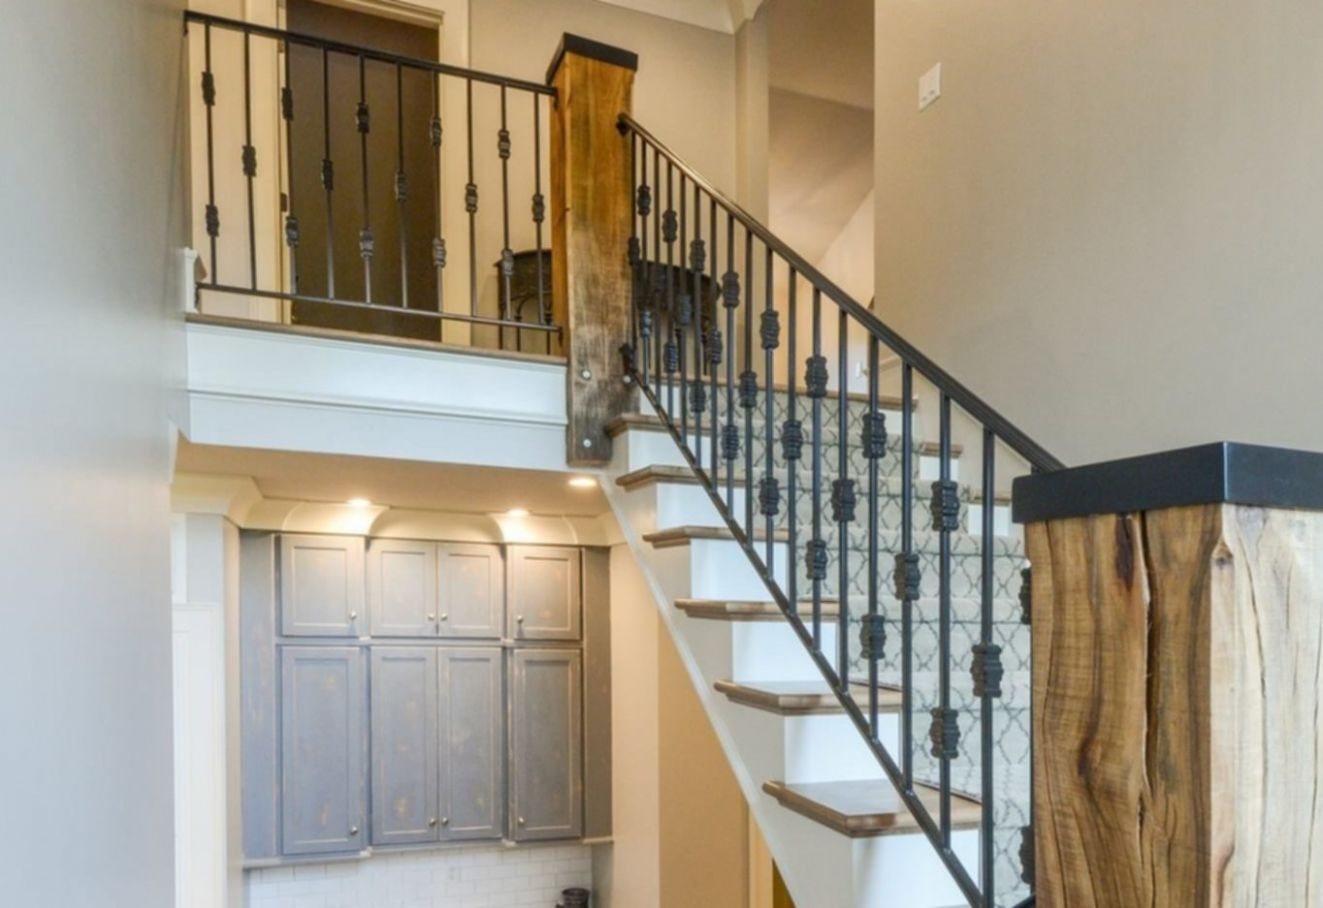 8 Exclusive Railings for Stairs Interior - Jessie Home & Garden